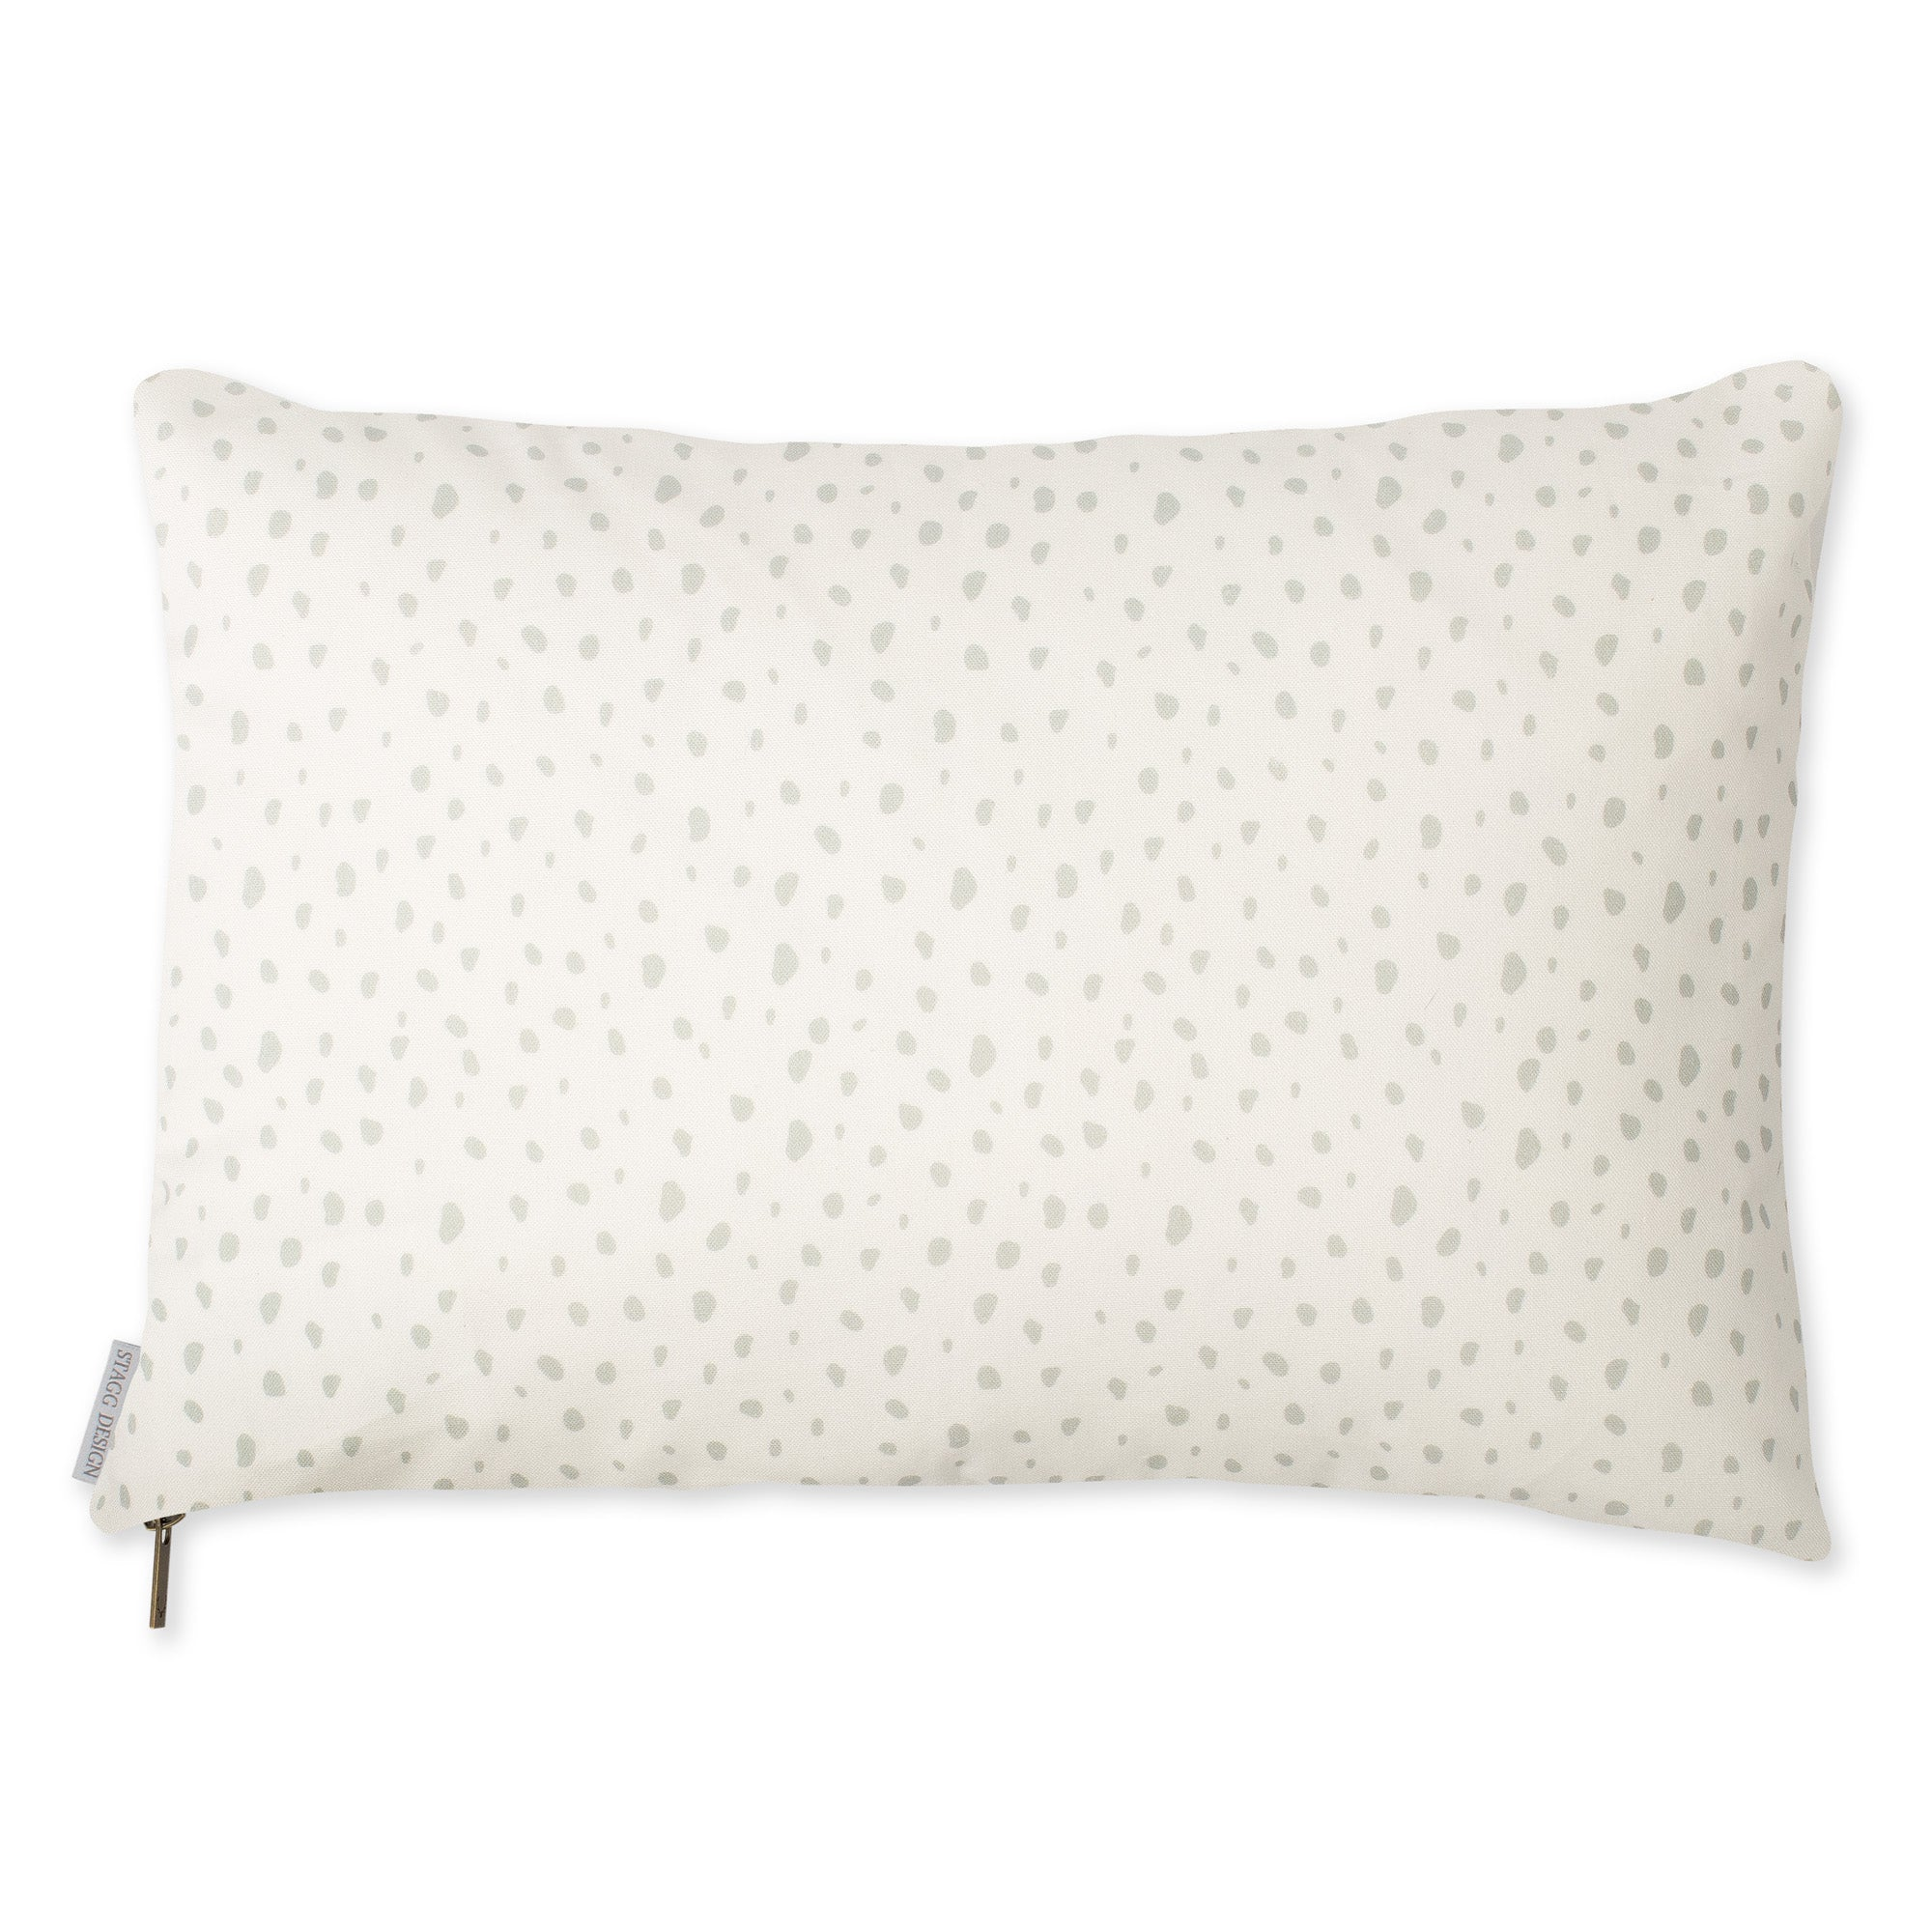 Modern Dot Pillow - Grey on White